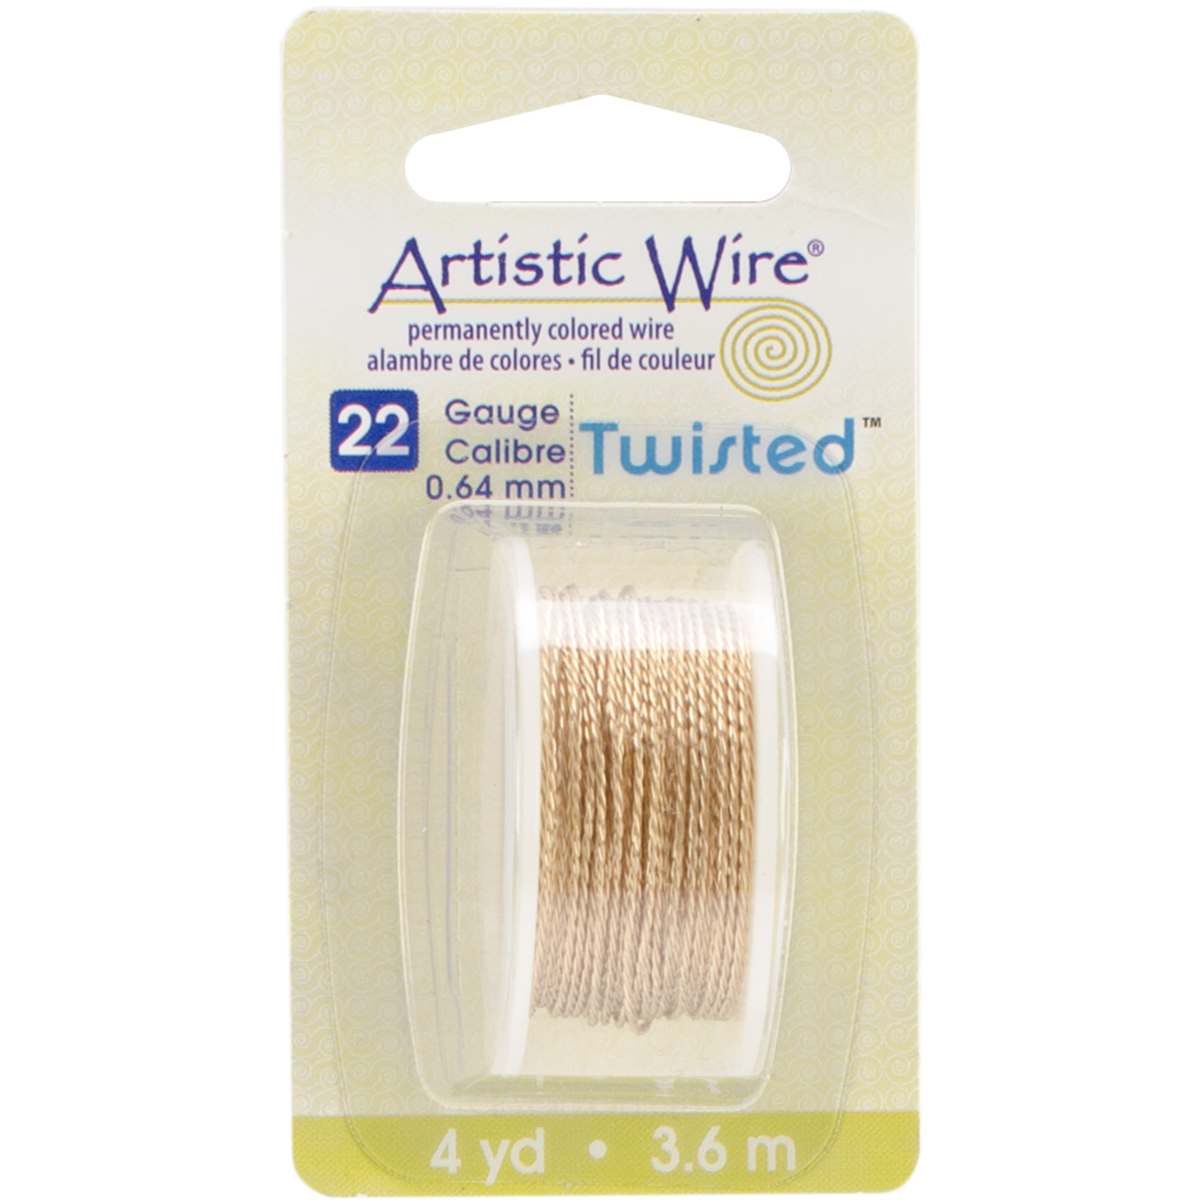 Artistic Wire Twisted-Non-Tarnish Brass - 22 Gauge, 4yd